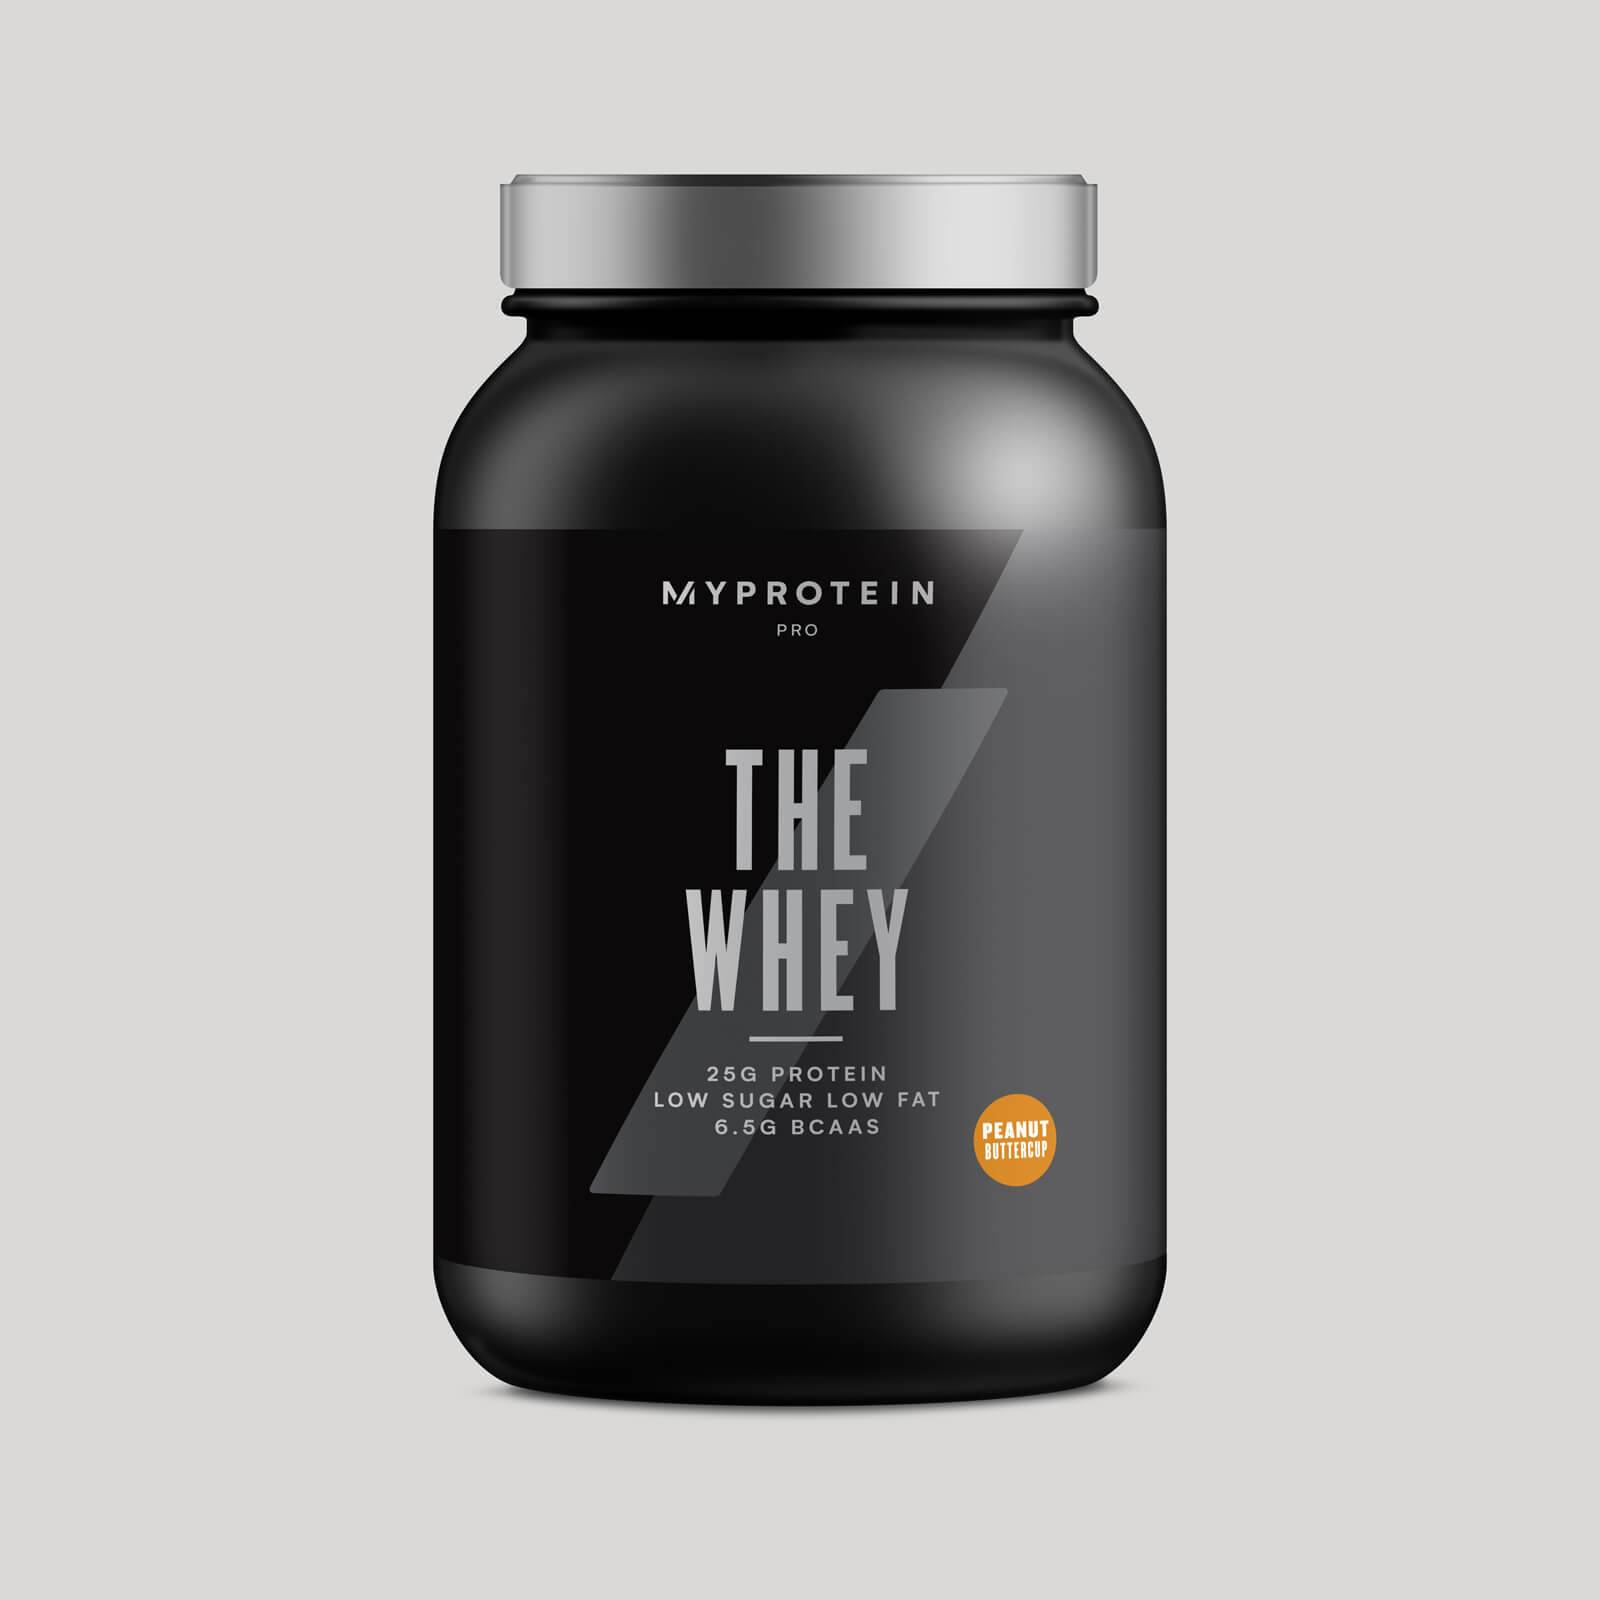 Myprotein THE Whey™ - 30 Servings - 930g - Burro di arachidi